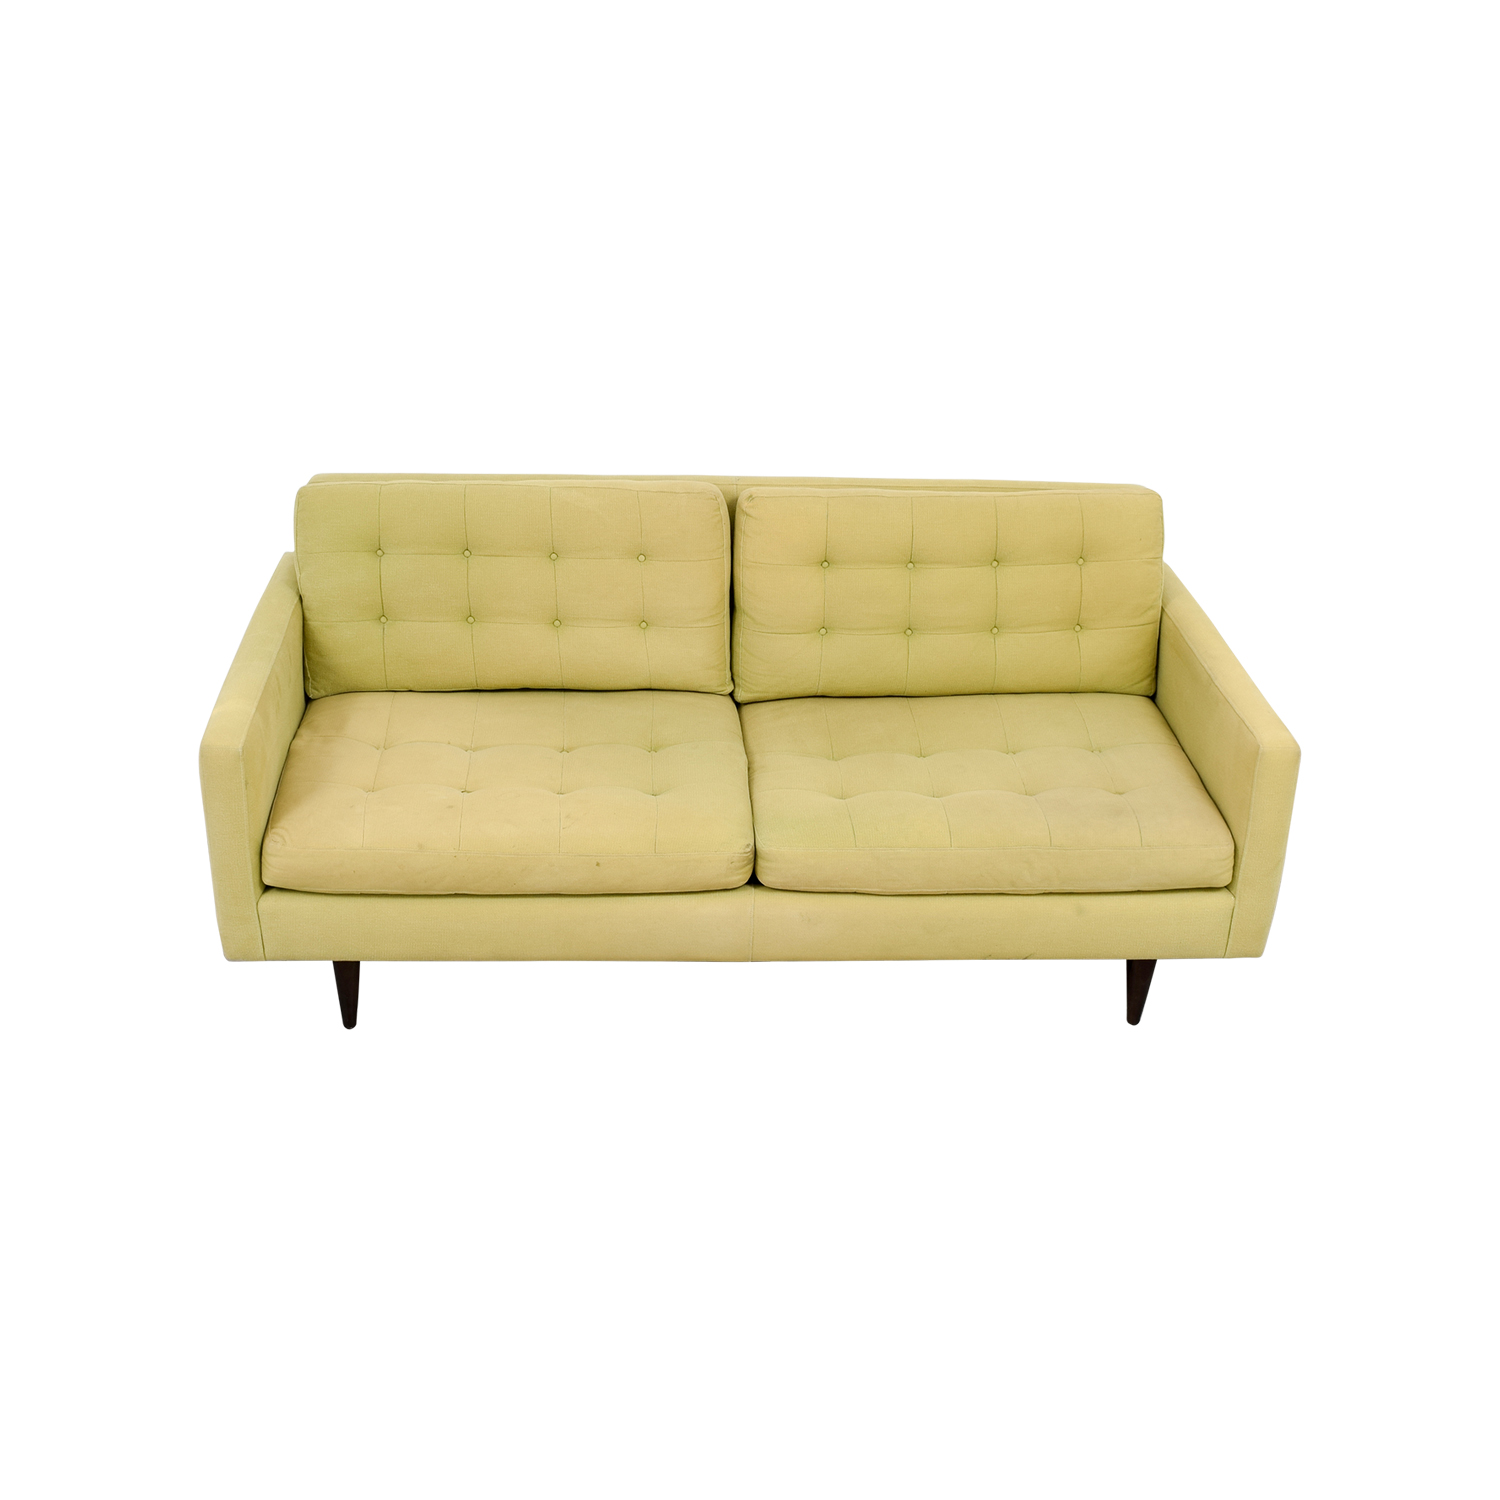 Swell 77 Off Crate Barrel Crate Barrel Petrie Pale Green Tufted Sofa Sofas Pabps2019 Chair Design Images Pabps2019Com